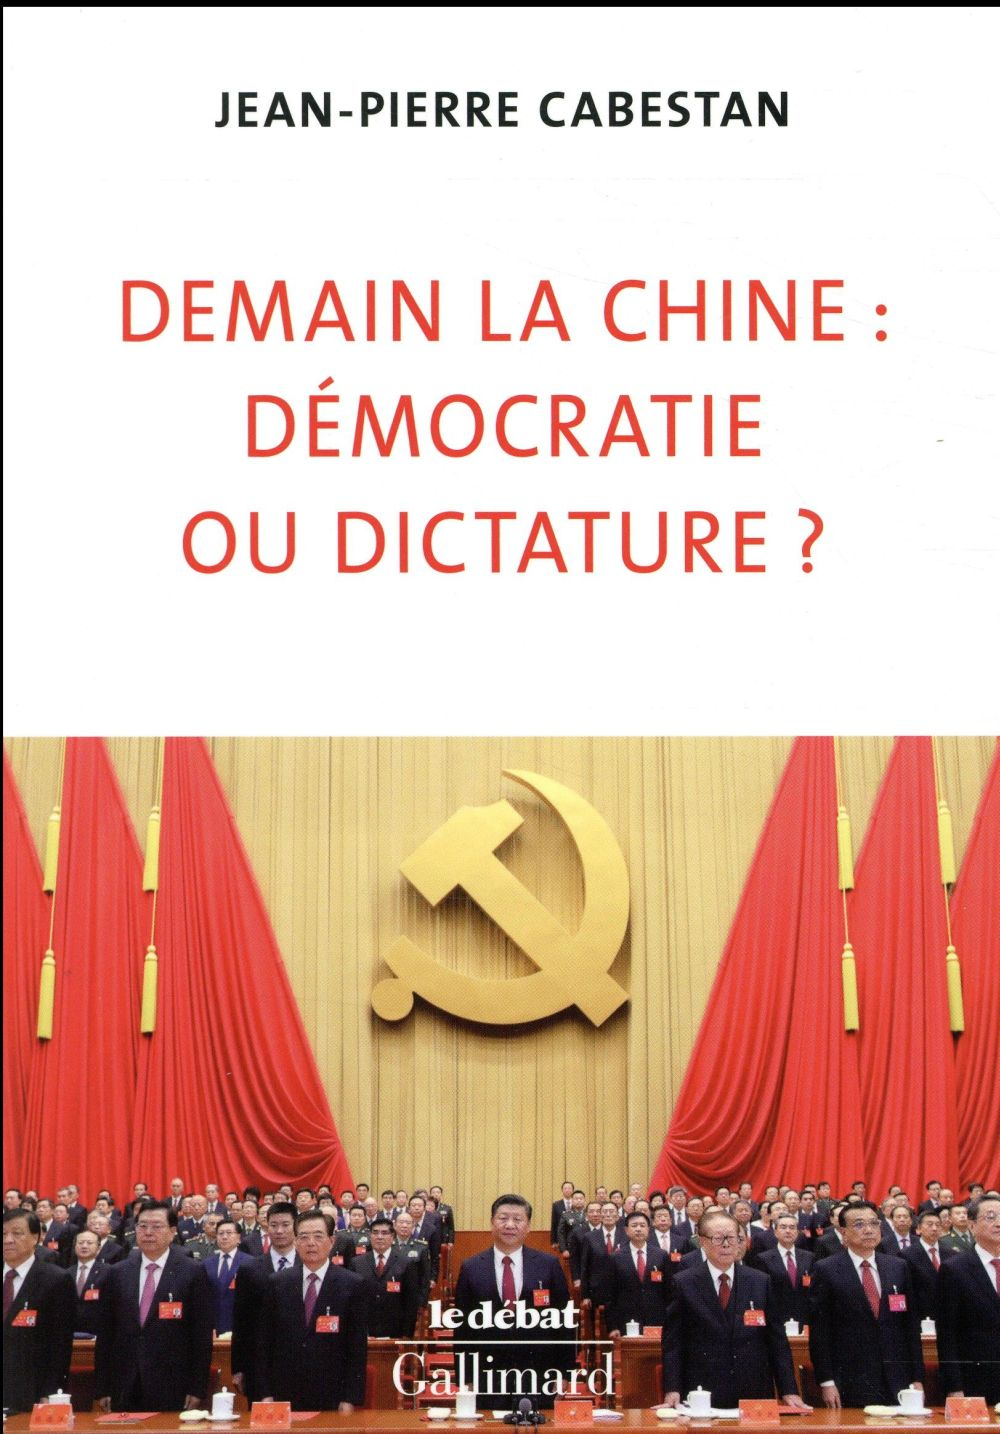 DEMAIN LA CHINE : DEMOCRATIE OU DICTATURE ?